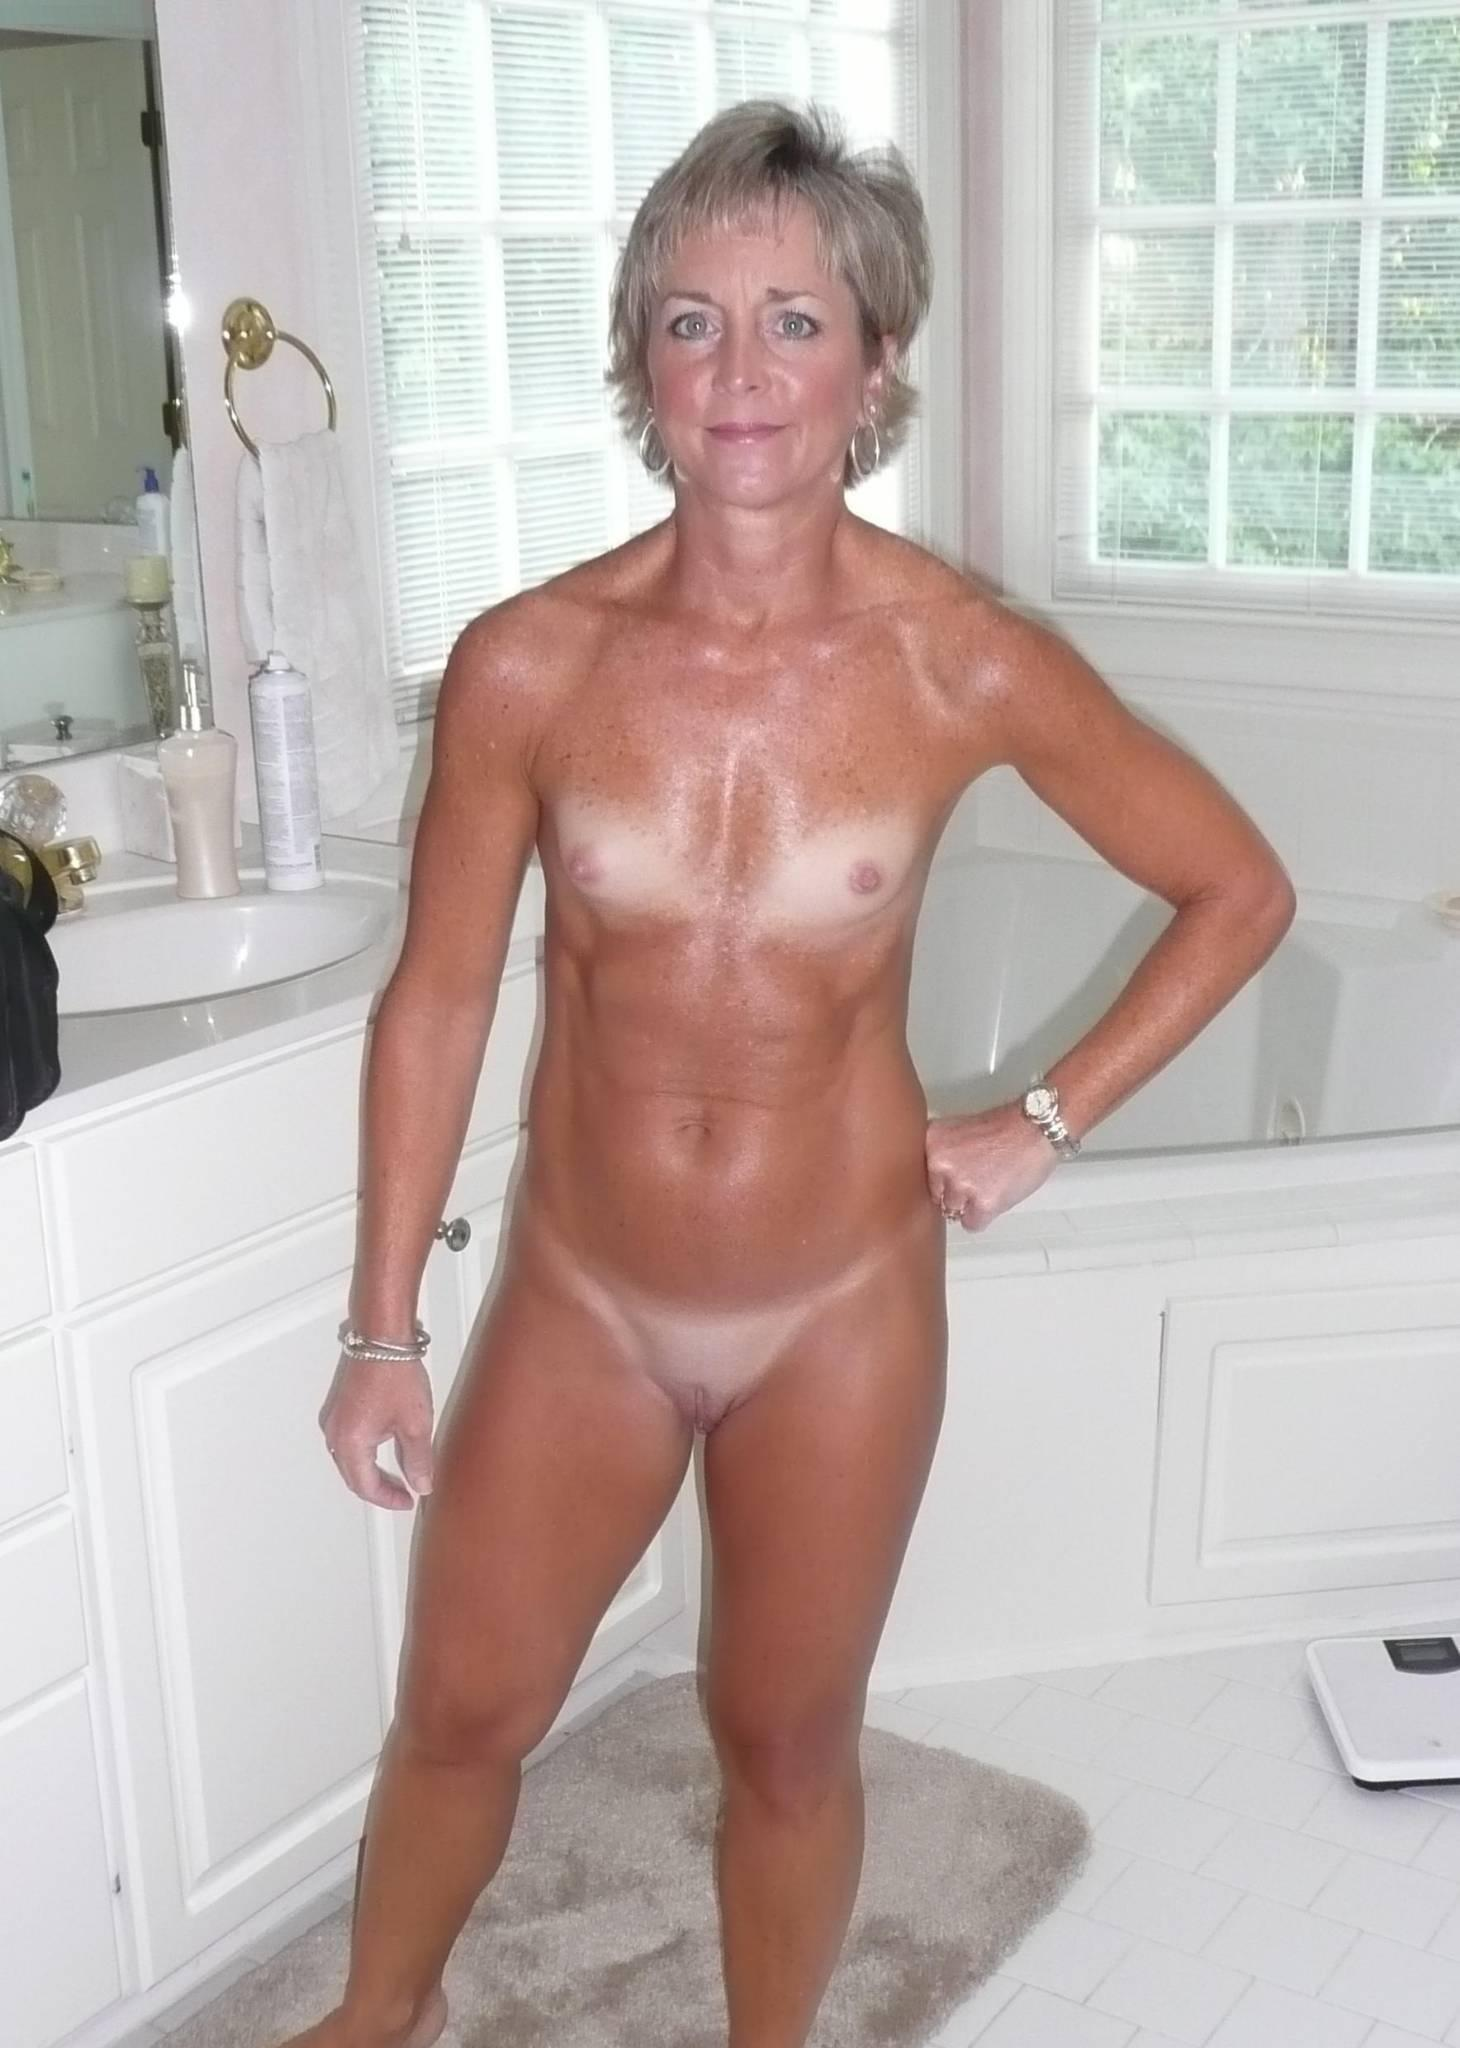 Tara reid free nude photo